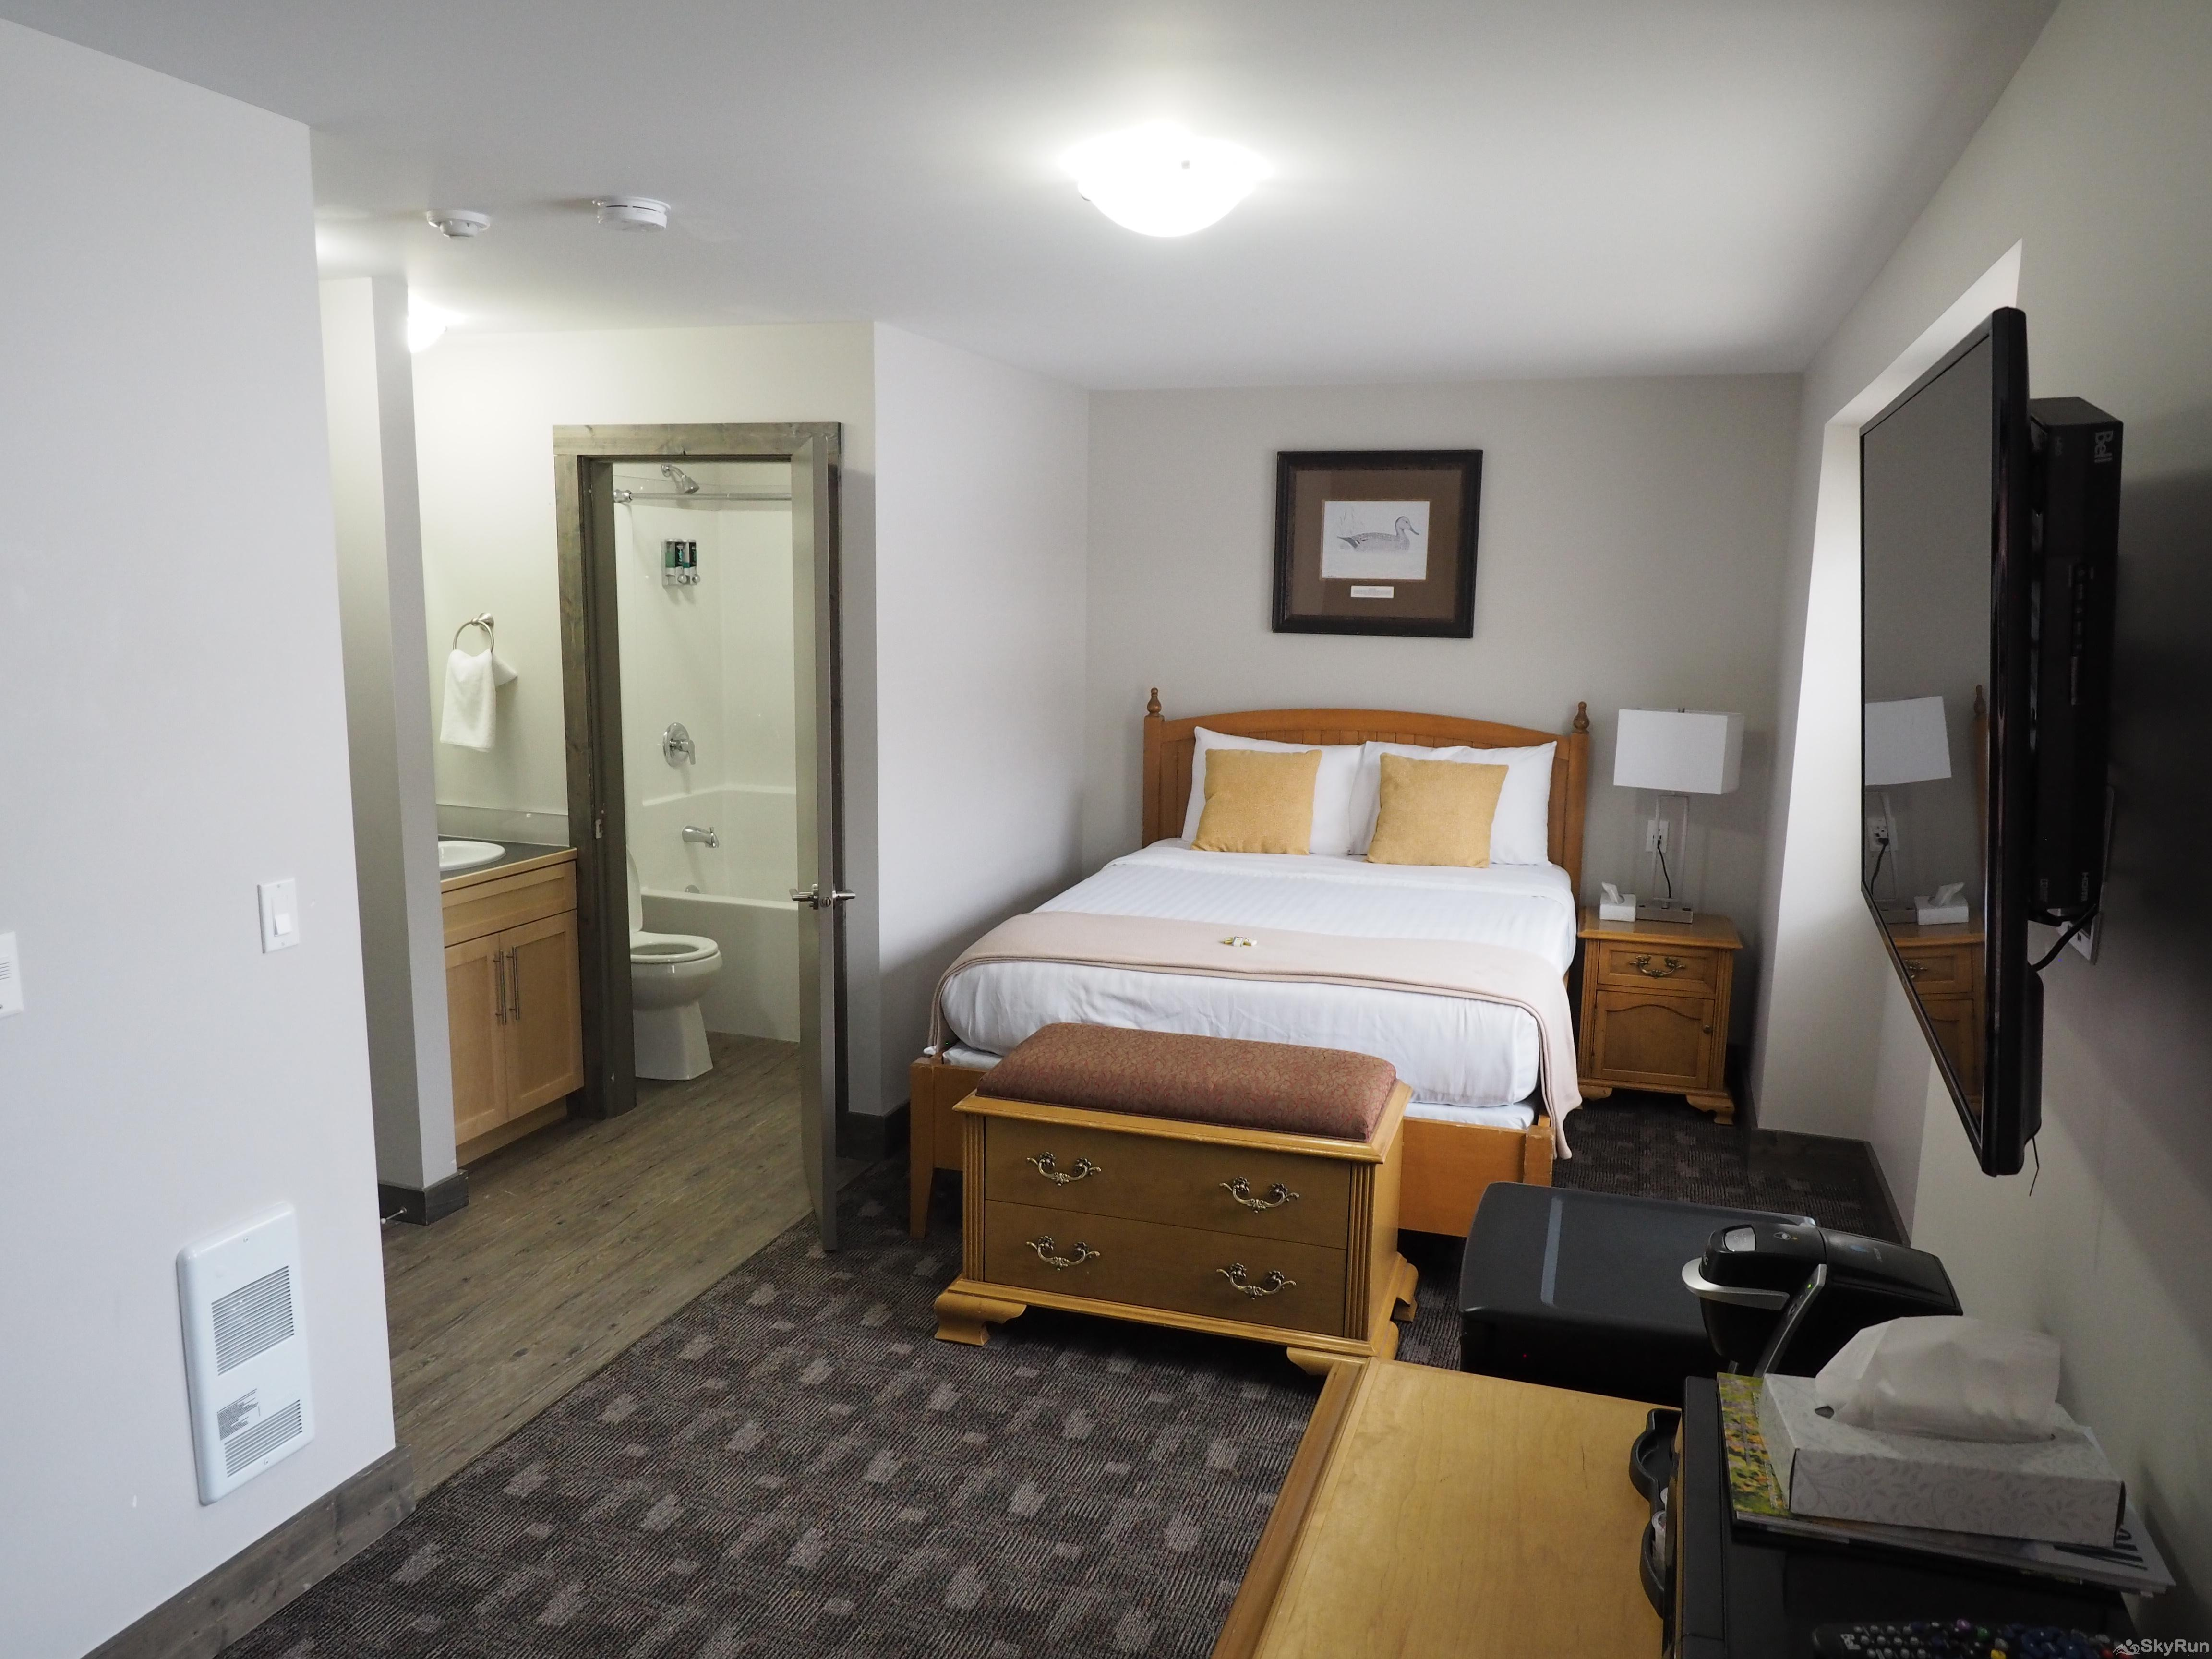 Apex Lodge Standard Room - 7 Queen bed